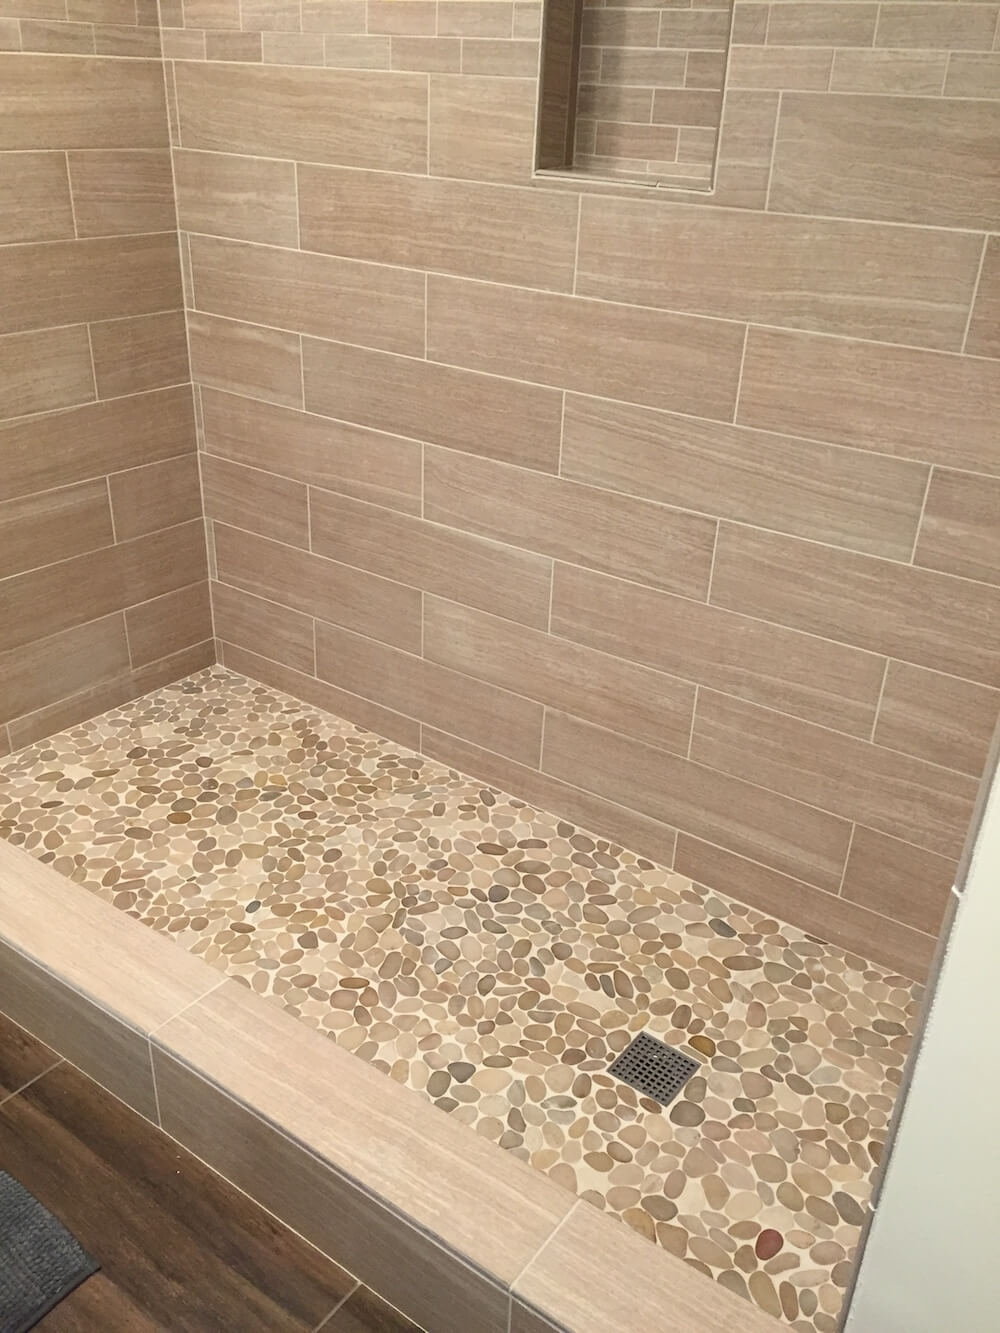 2018 cost to tile a shower how much to tile a shower